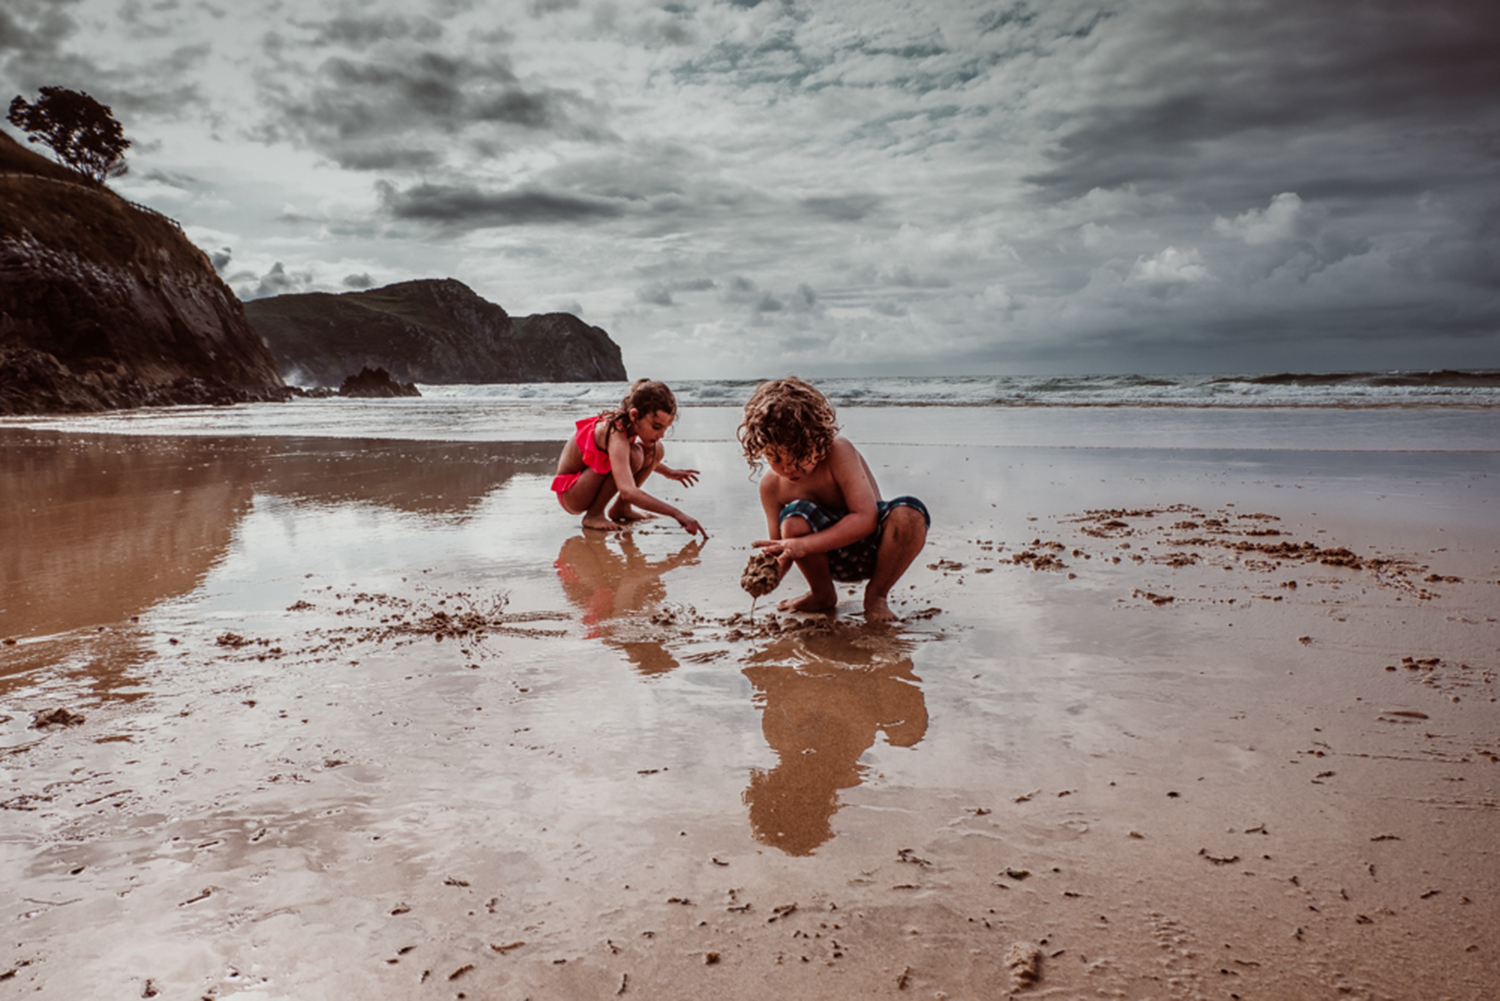 Outdoor photograph of two children playing at the beach.